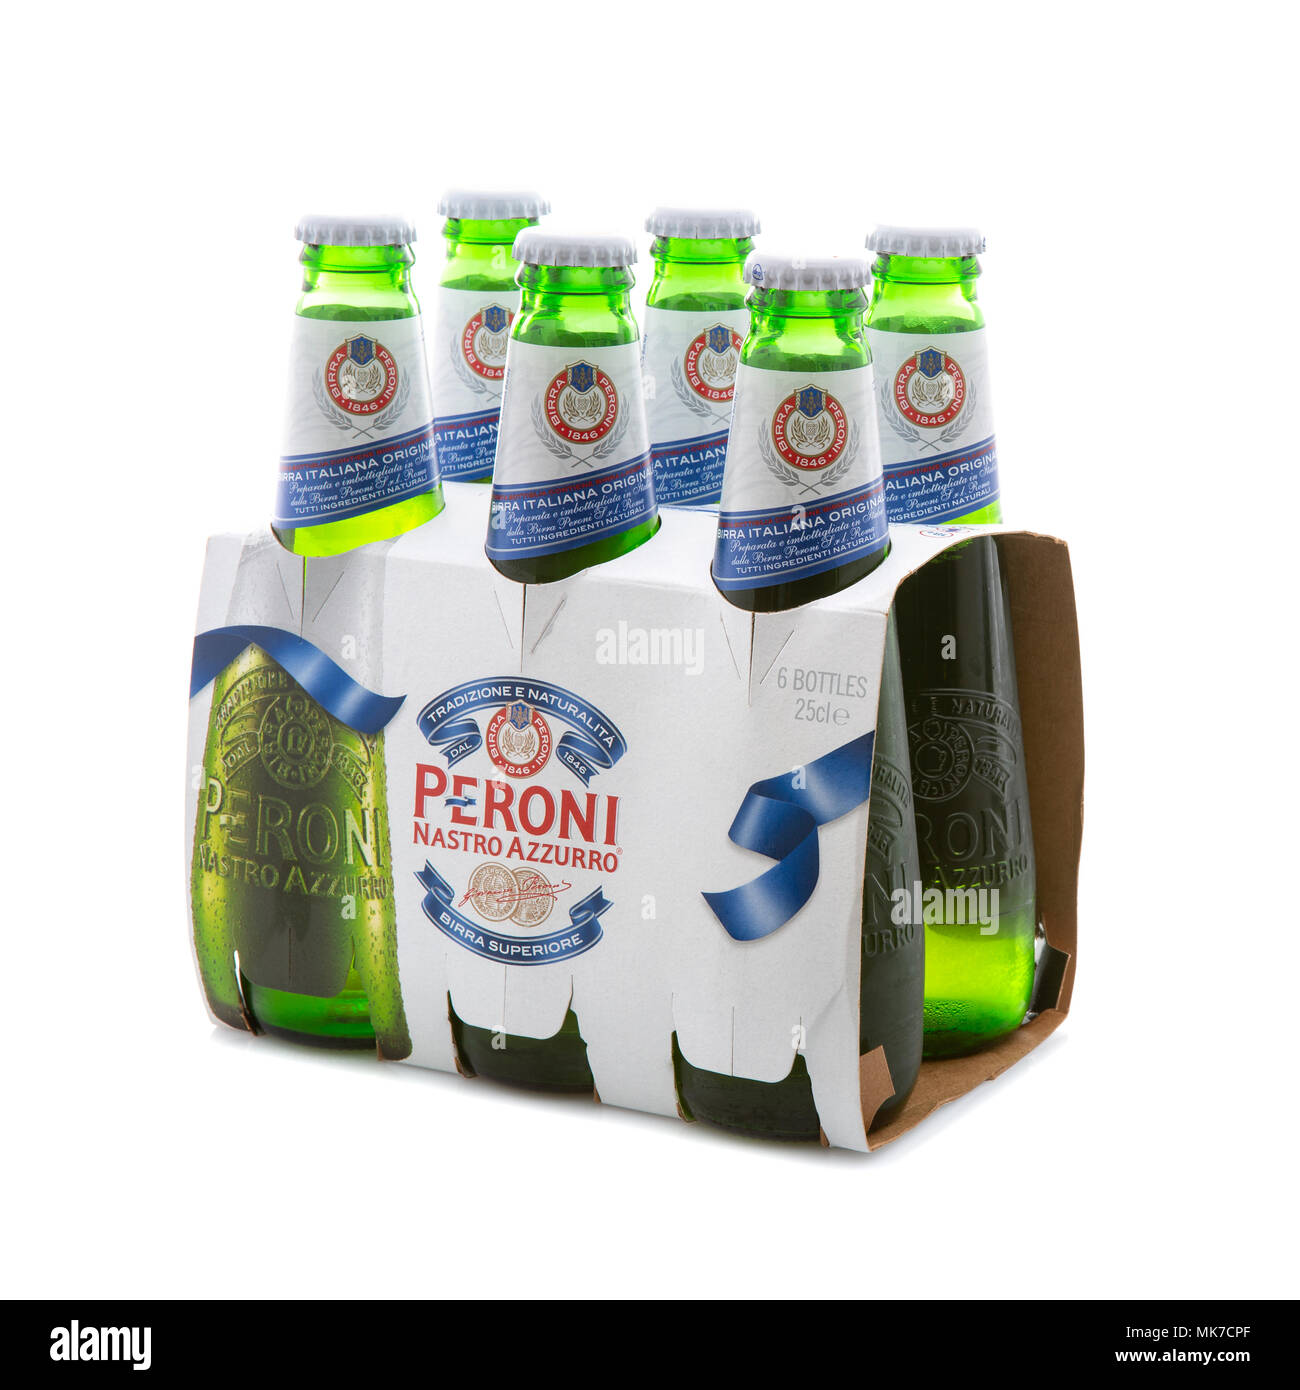 SWINDON, UK - MAY 7th, 2017: 6 Pack of Peroni Beer, Peroni Brewery (Birra Peroni), is a brewing company, founded in Italy and owned by SAB Miller Stock Photo